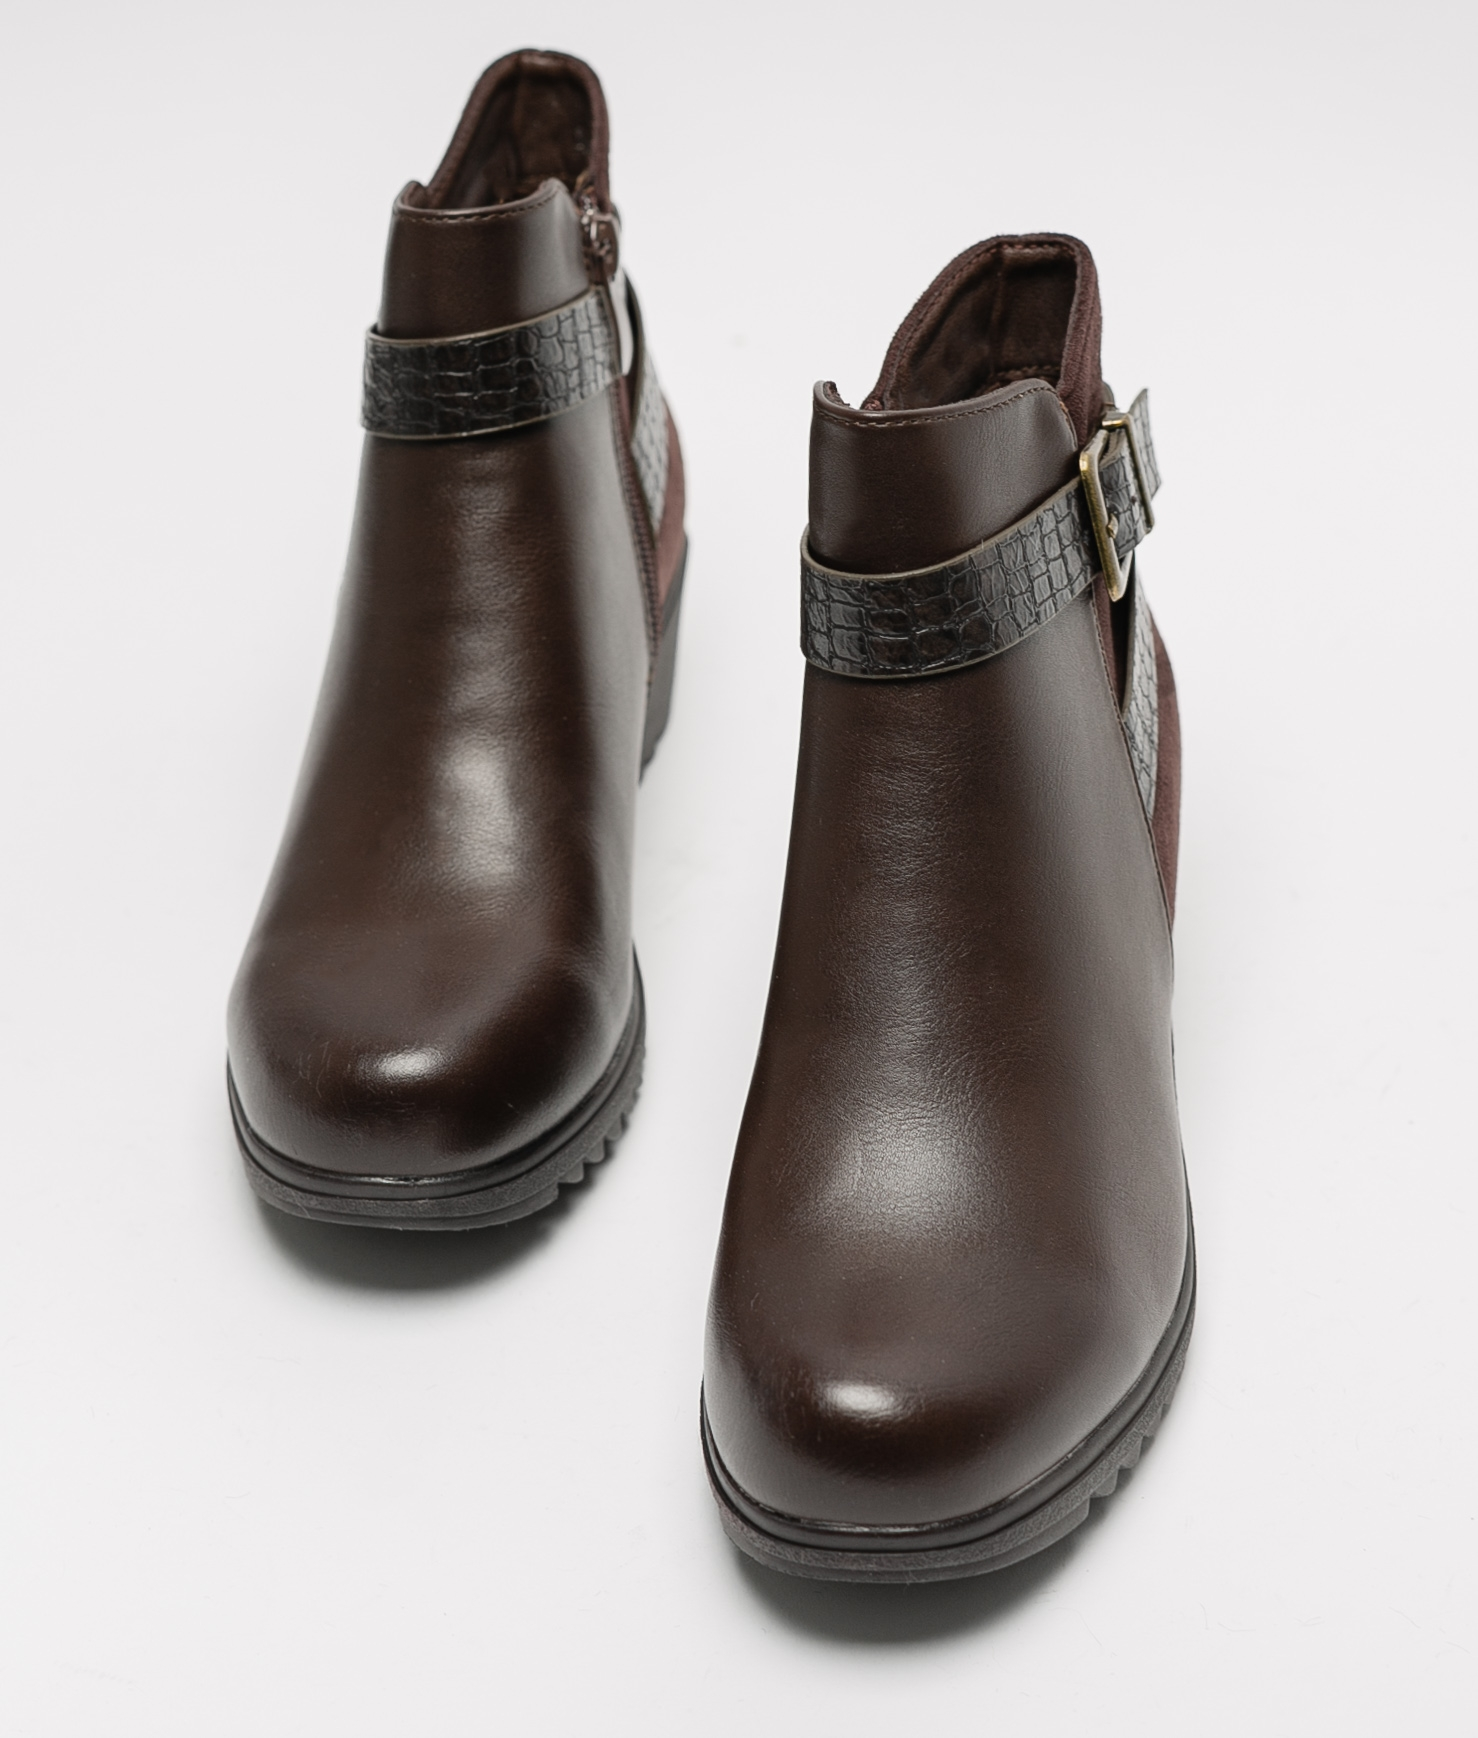 Klod Low Boot - Brown